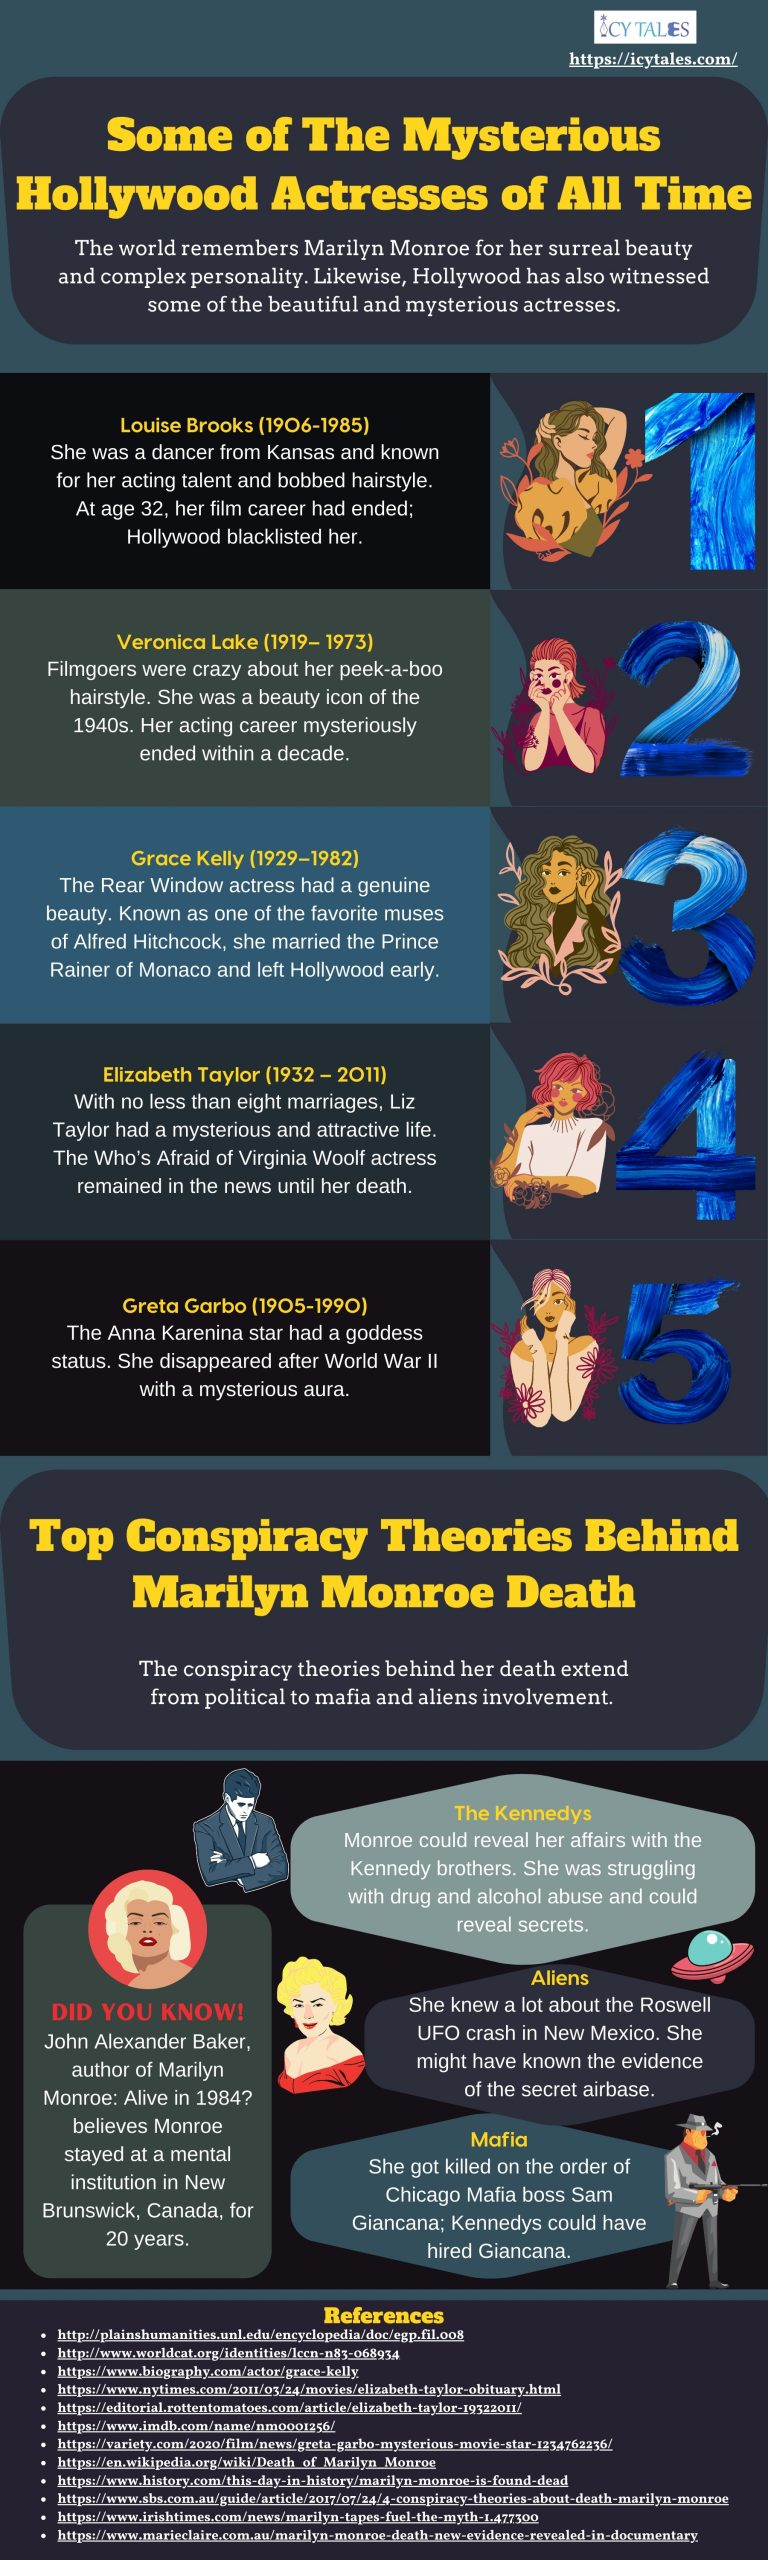 Some of The Mysterious Hollywood Actresses of All Time